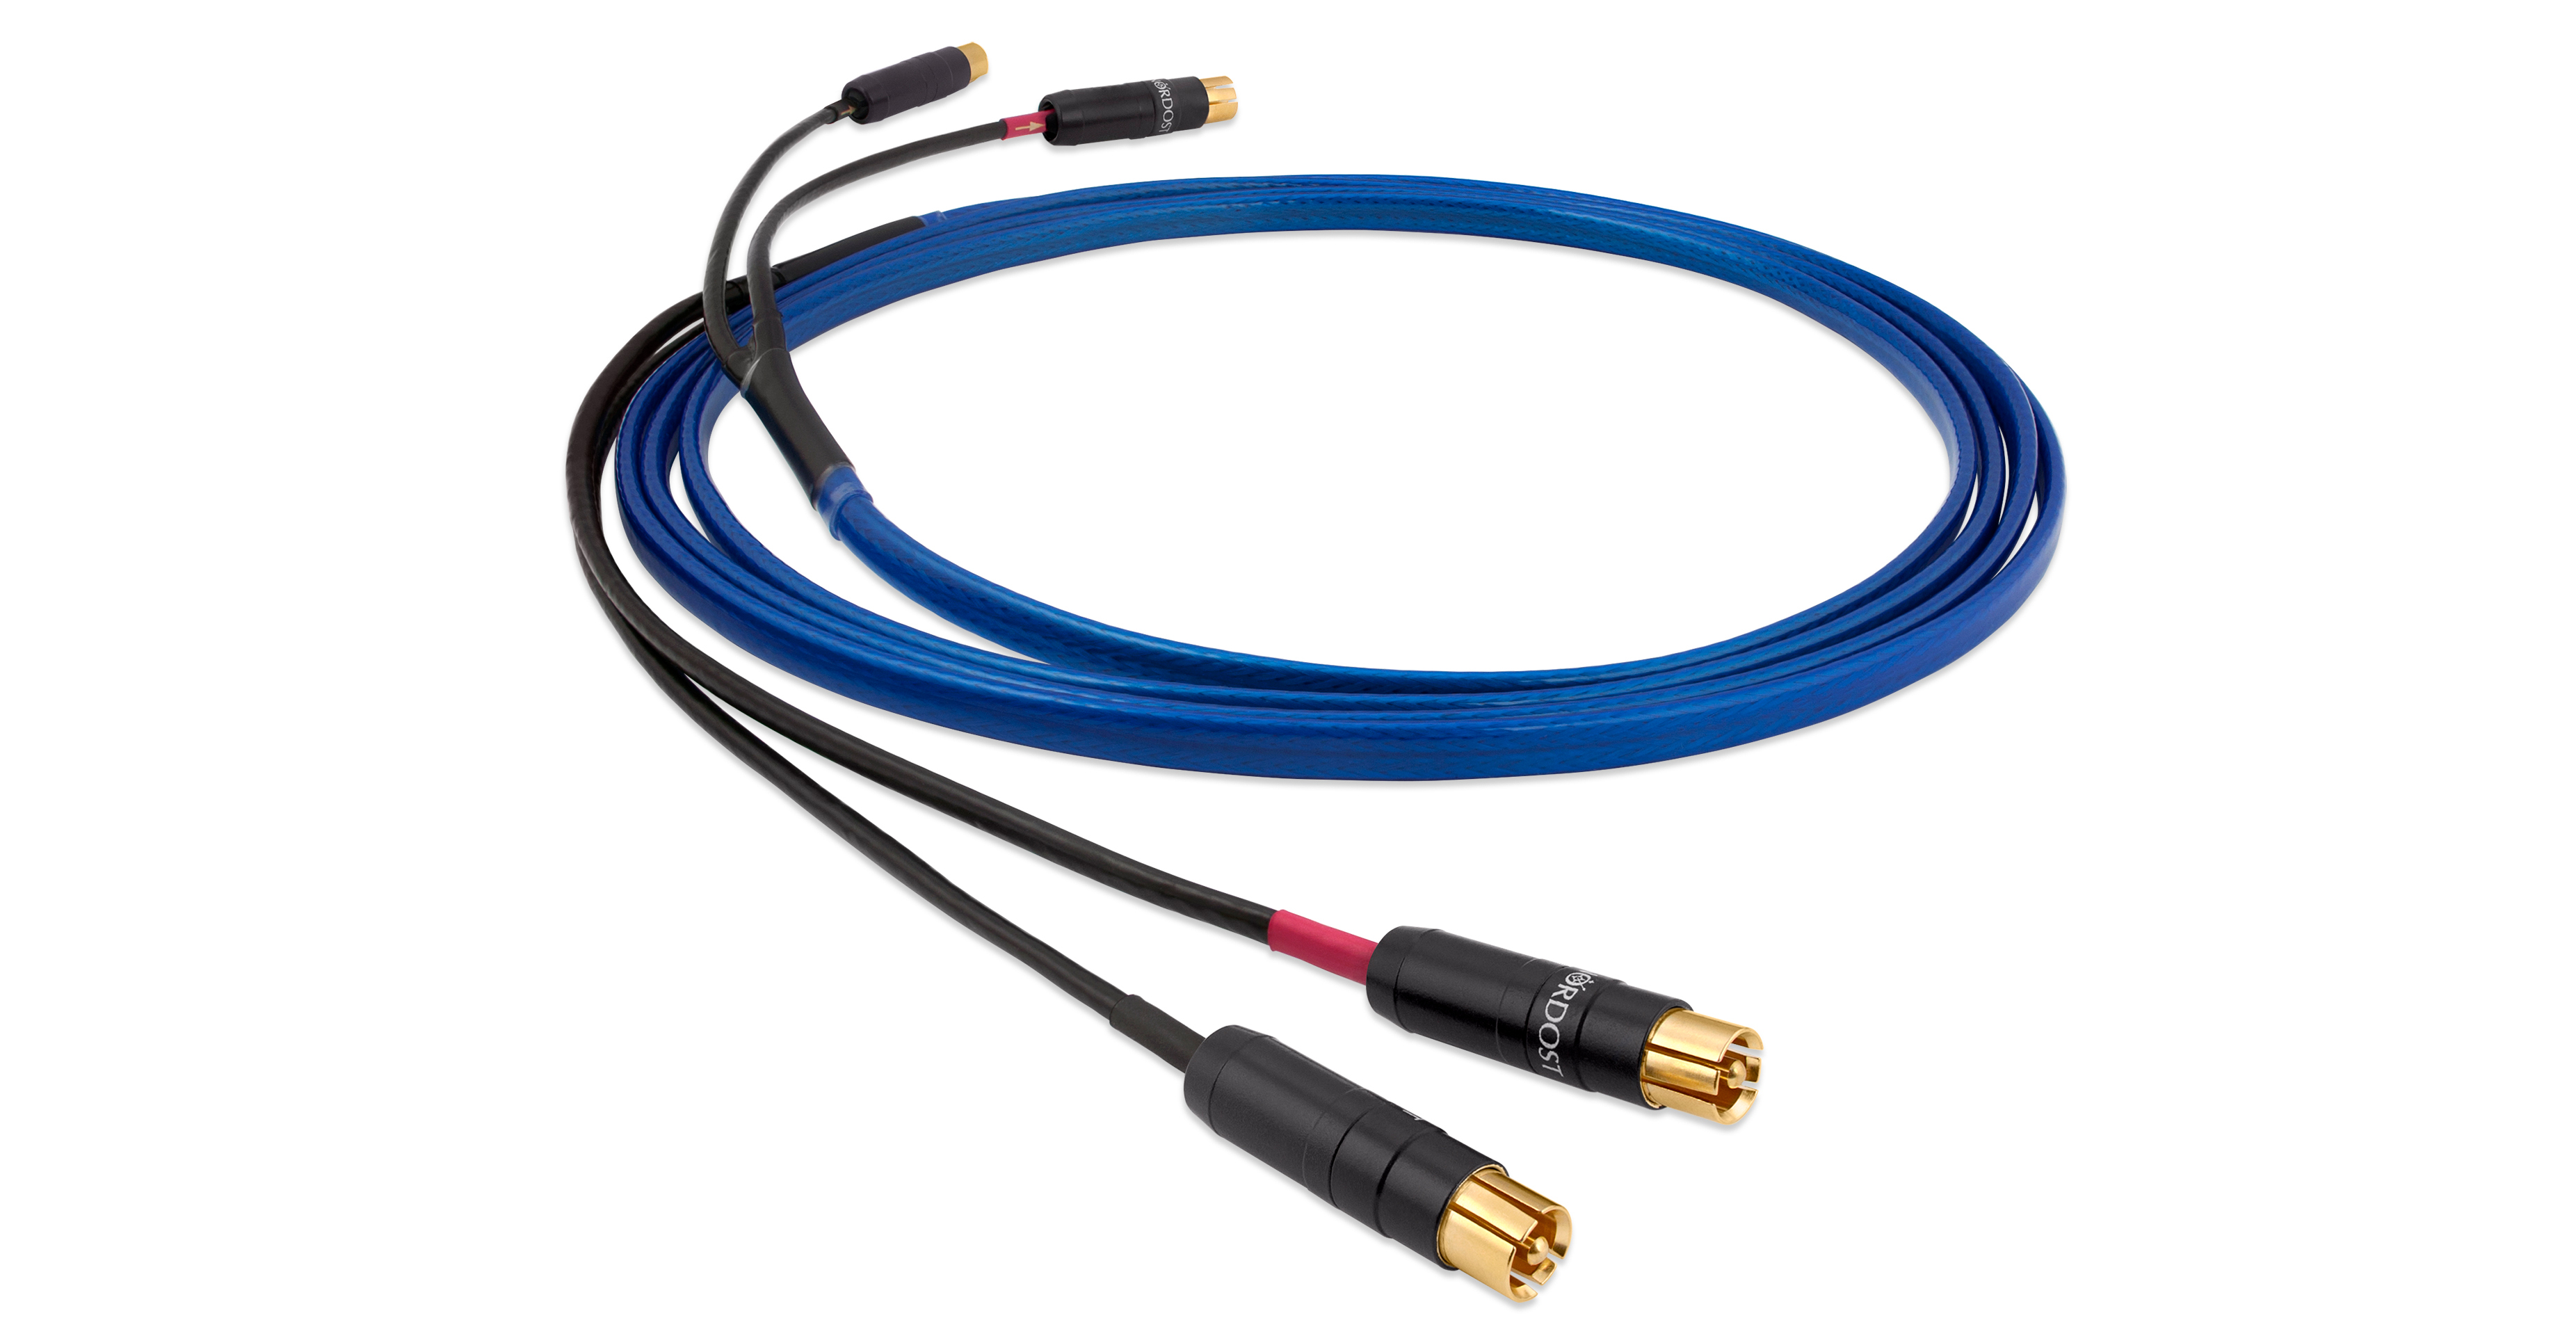 Helpful Hints Nordost Blog Well Usb Wiring Diagram Wires On Hdmi Cable Connector That A Good Purpose Built Subwoofer Will Have To Overcome If These Challenges Arent Addressed Properly The Signal Arrive Tired